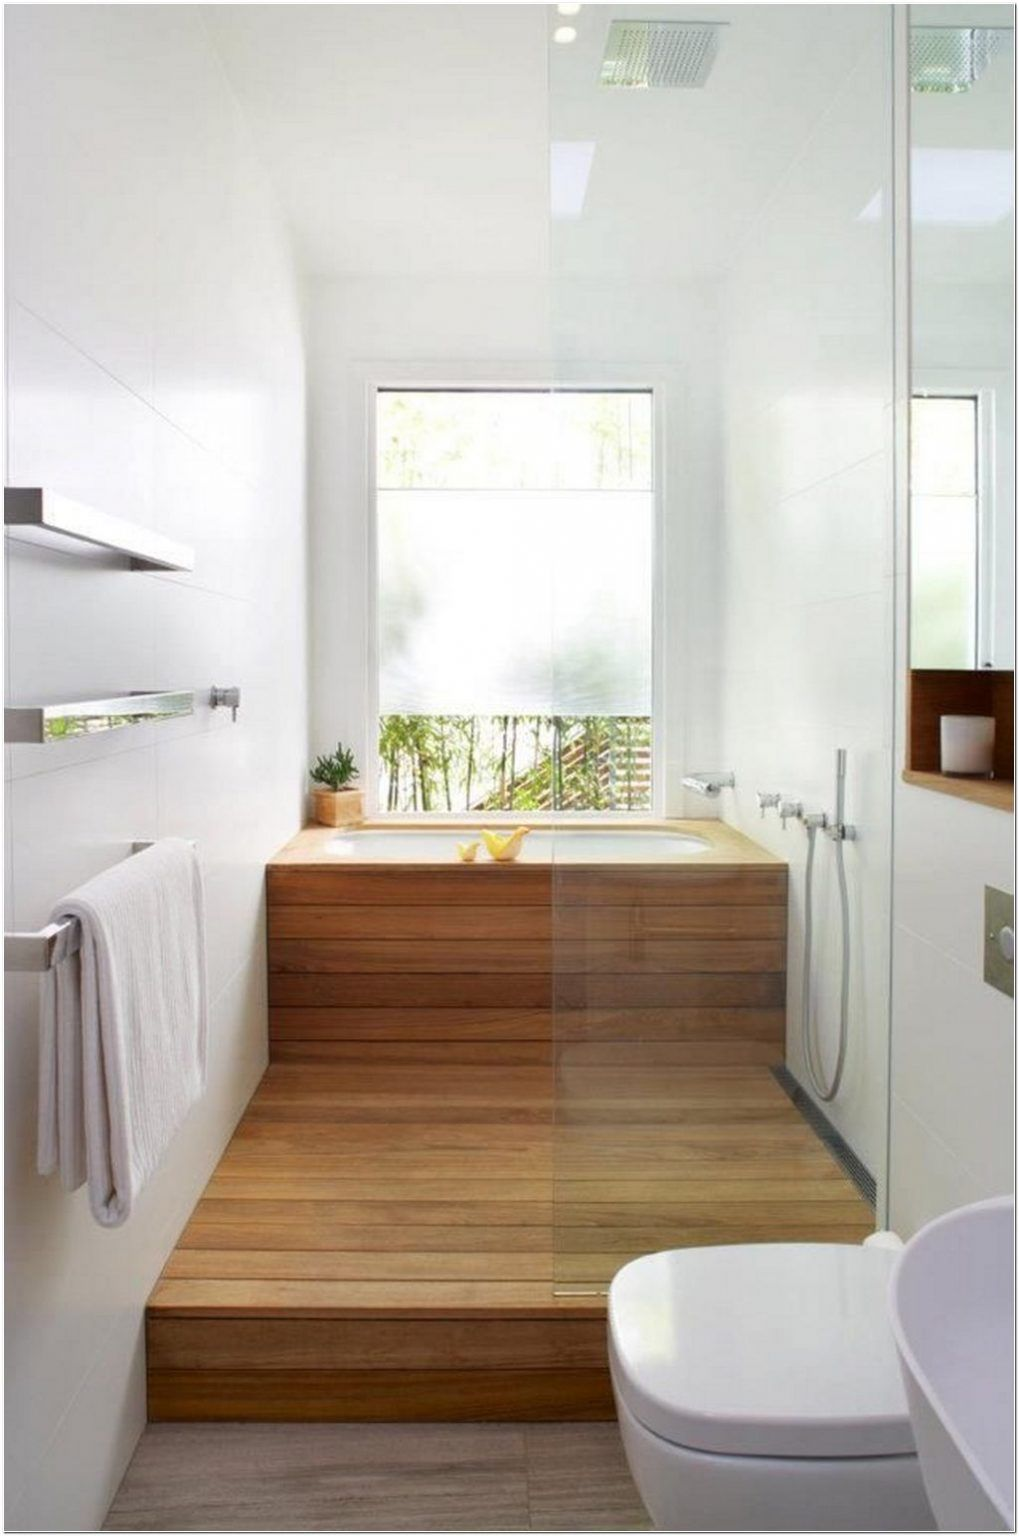 99 Small Bathroom Ideas That Increase Space In 2020 25 In 2020 Japanese Bathroom Design Small Space Bathroom Design Japanese Bathroom